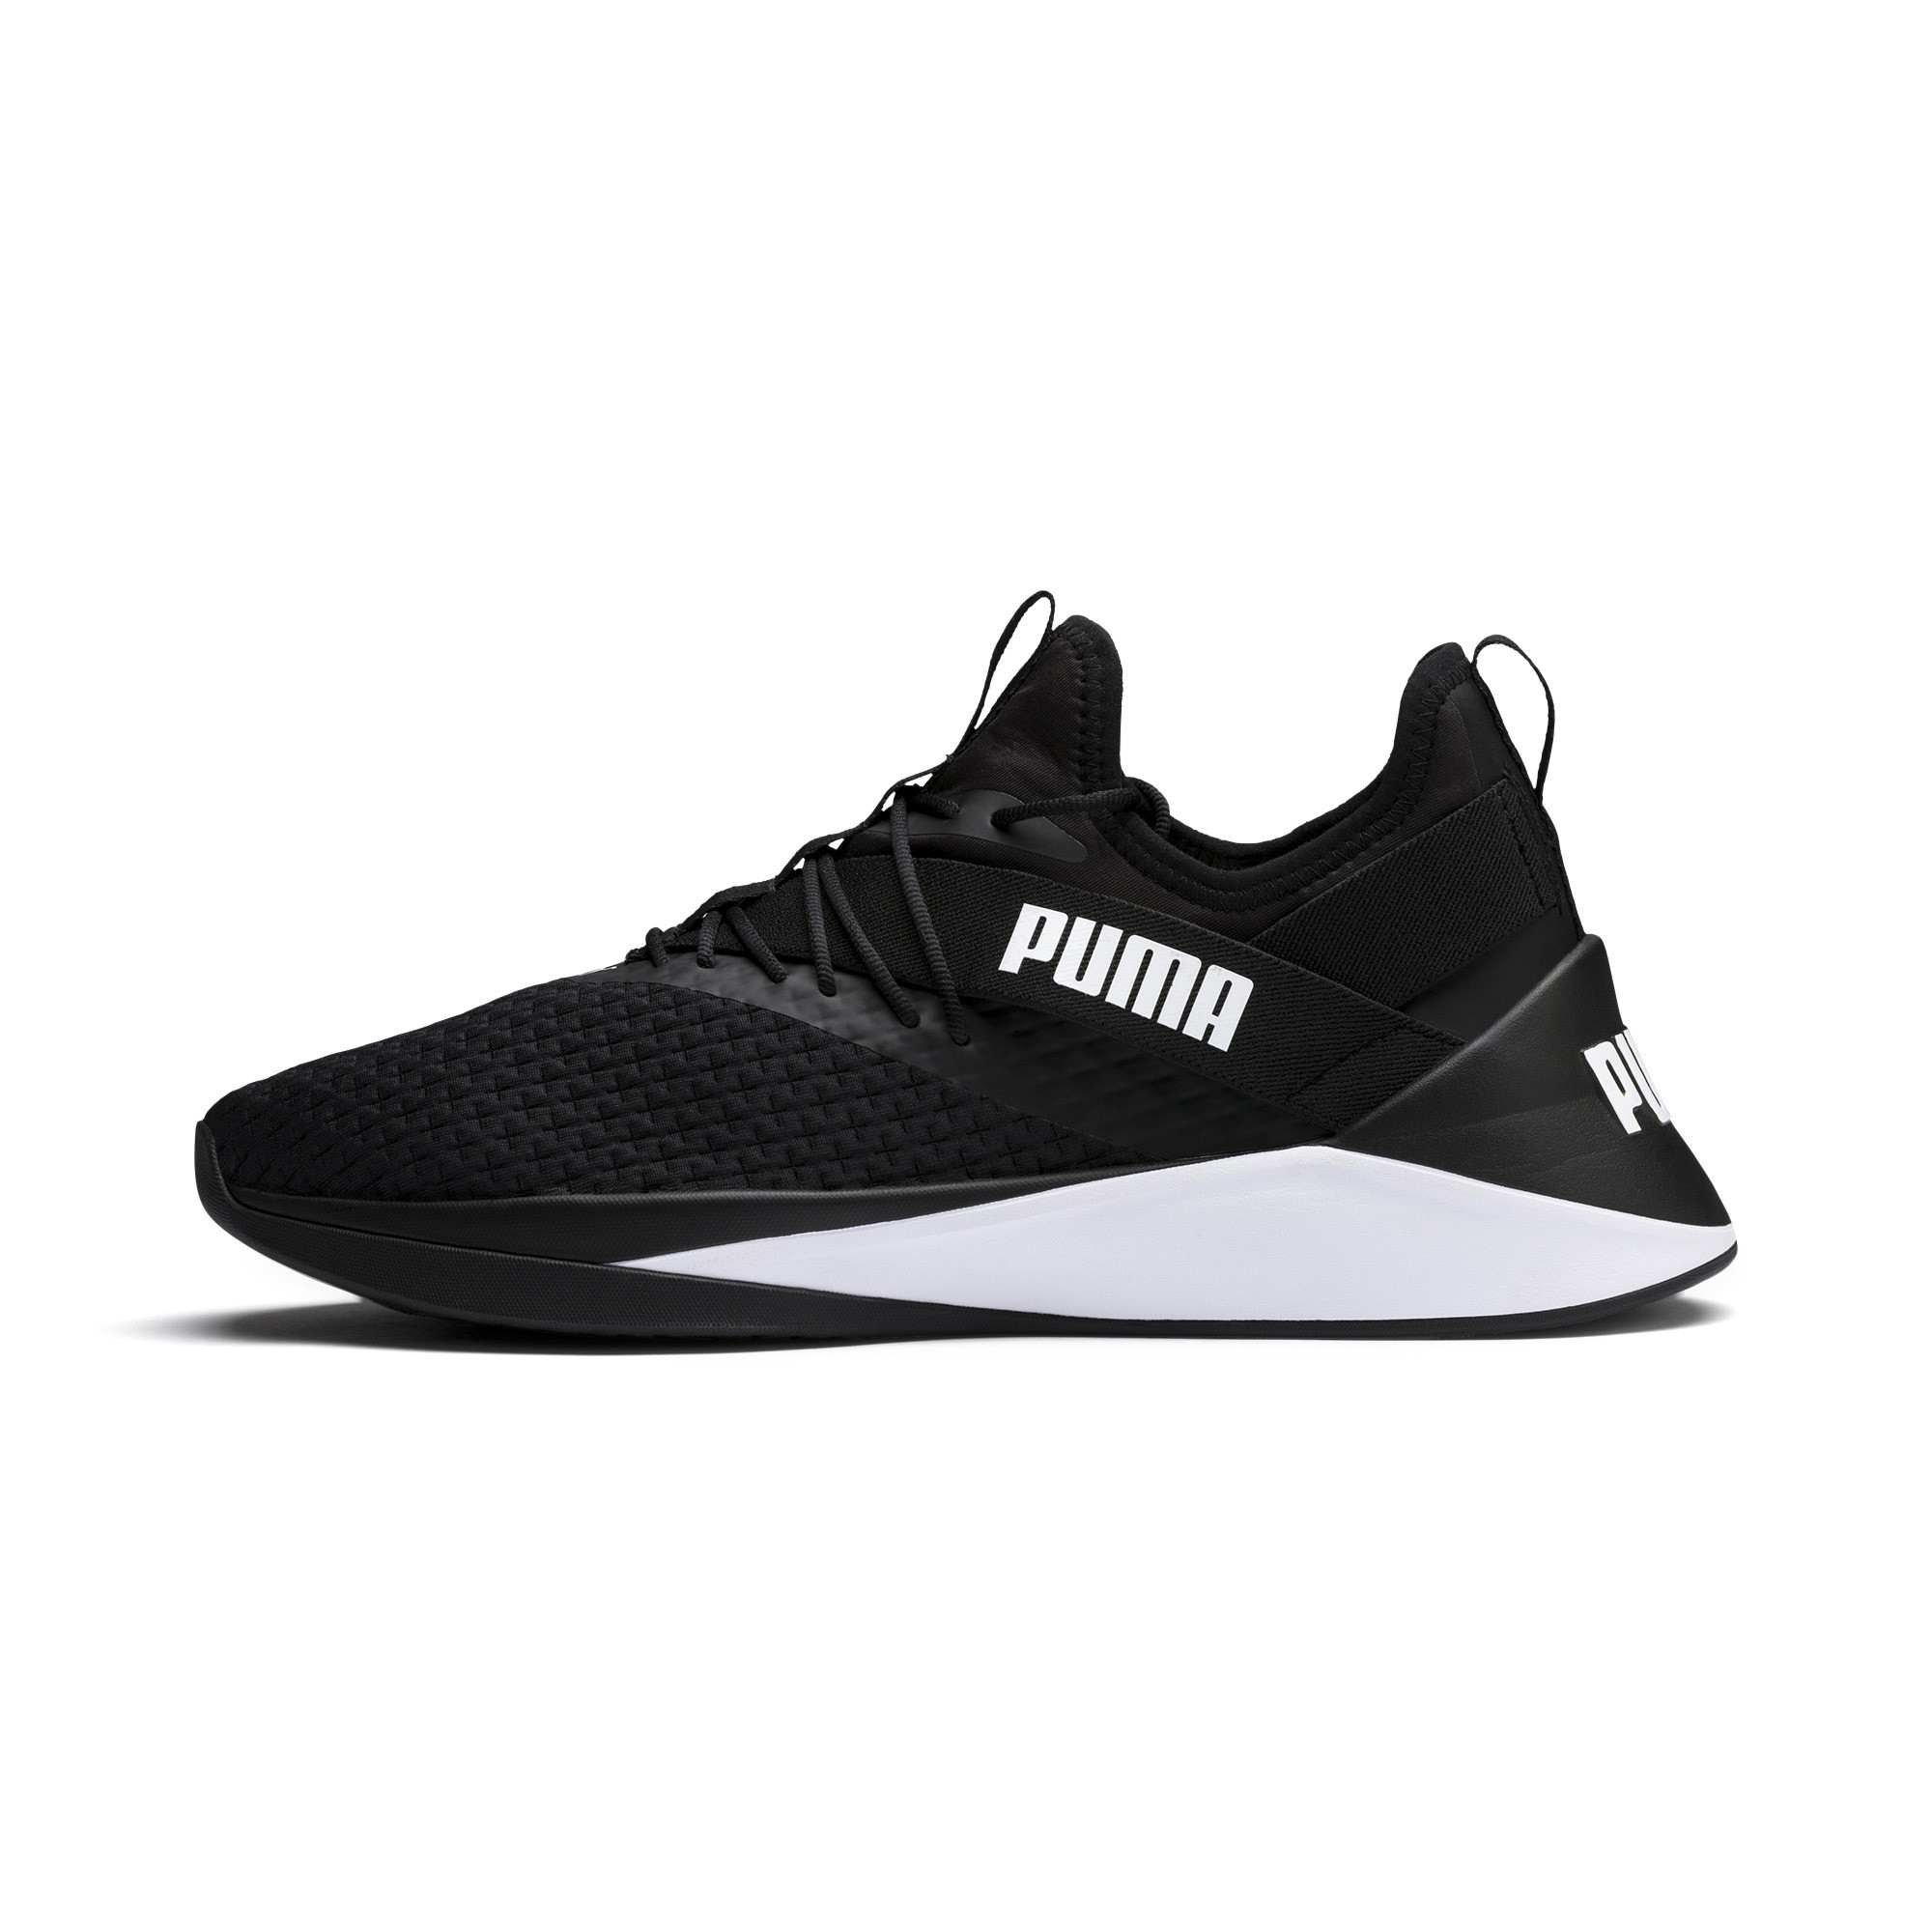 187507ee8 All Rights Reserved © PUMA, 2018.